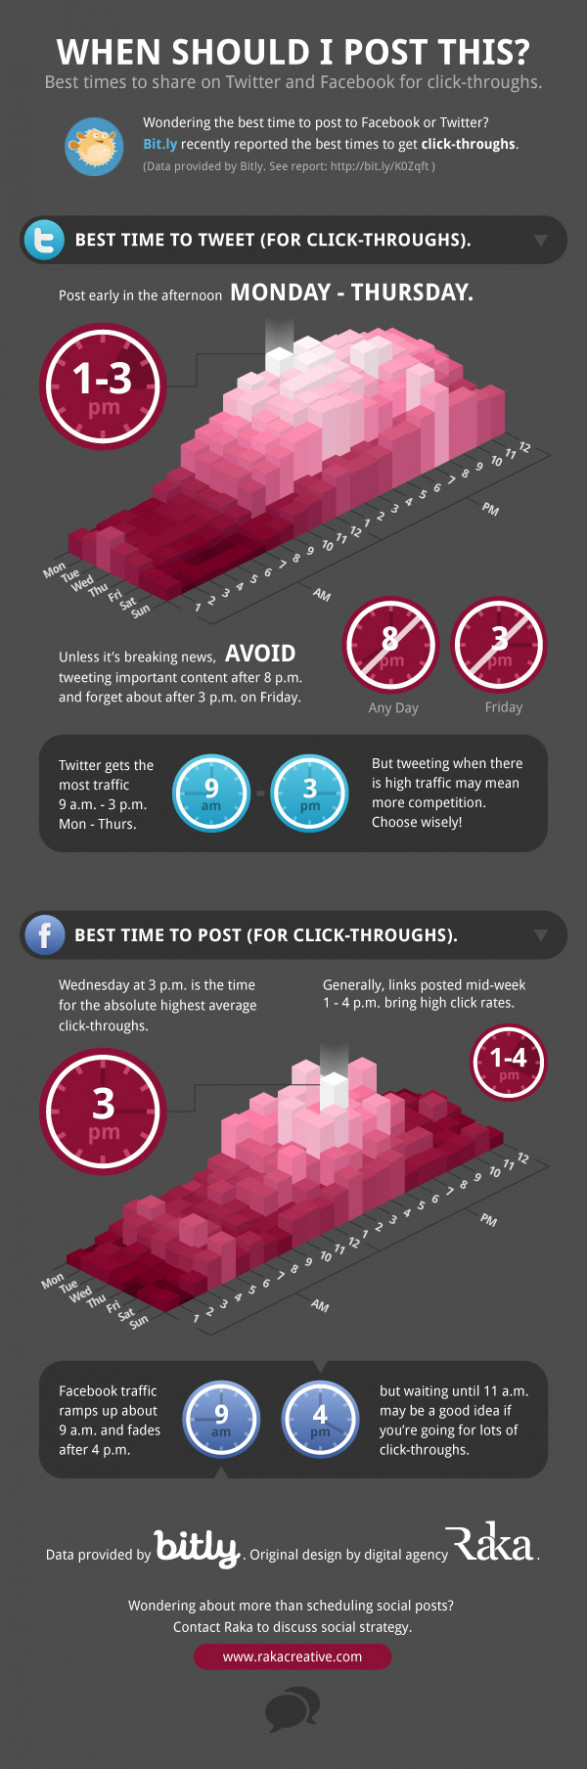 Best Time to Tweet or Post to Facebook for Click-Throughs